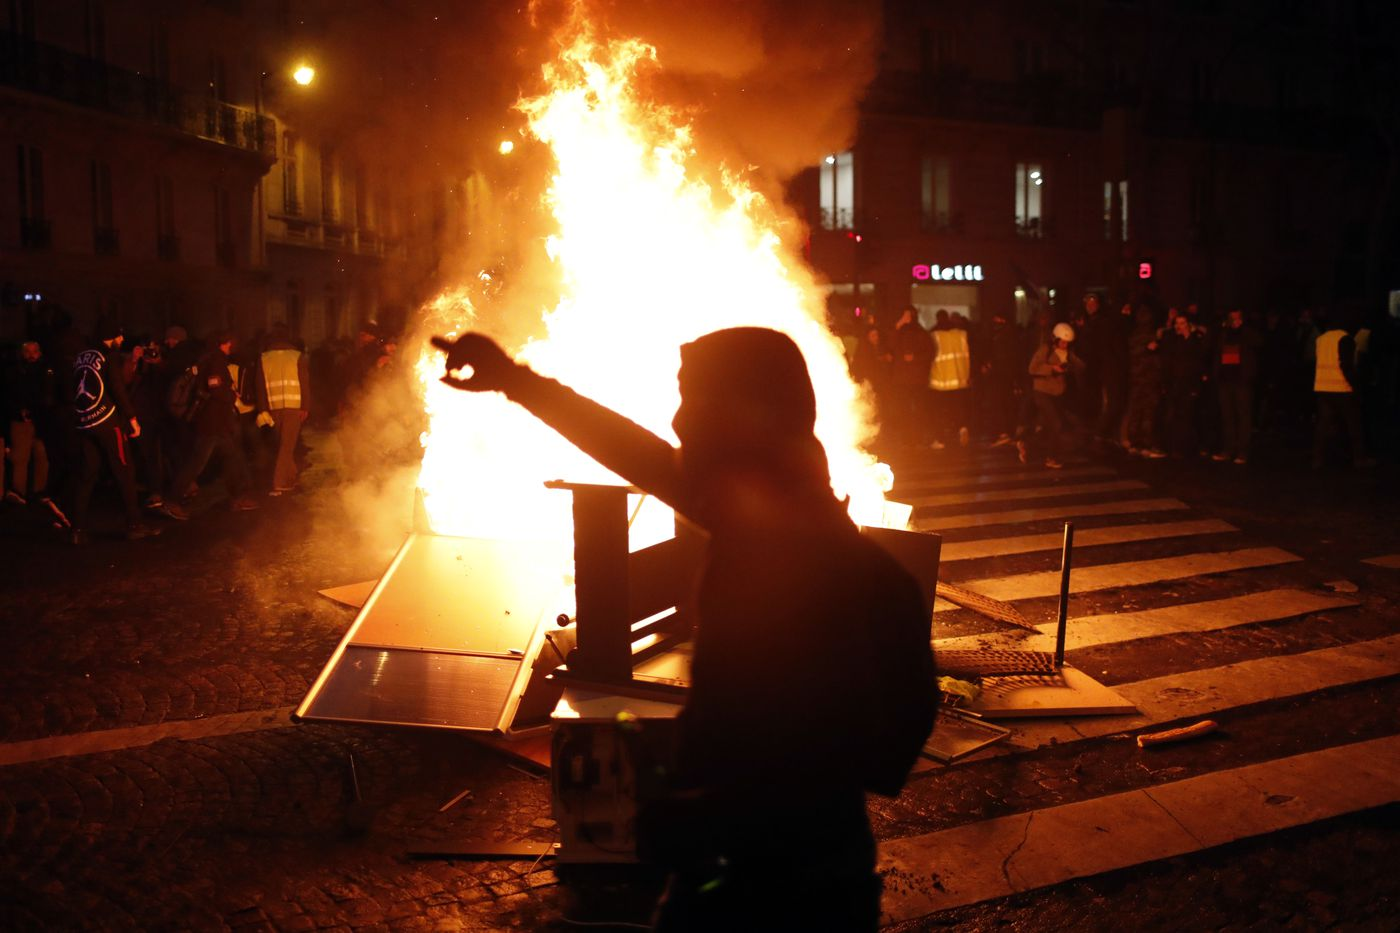 Demonstrators gather around a burning barricade during clashes with riot police in Paris on Saturday.